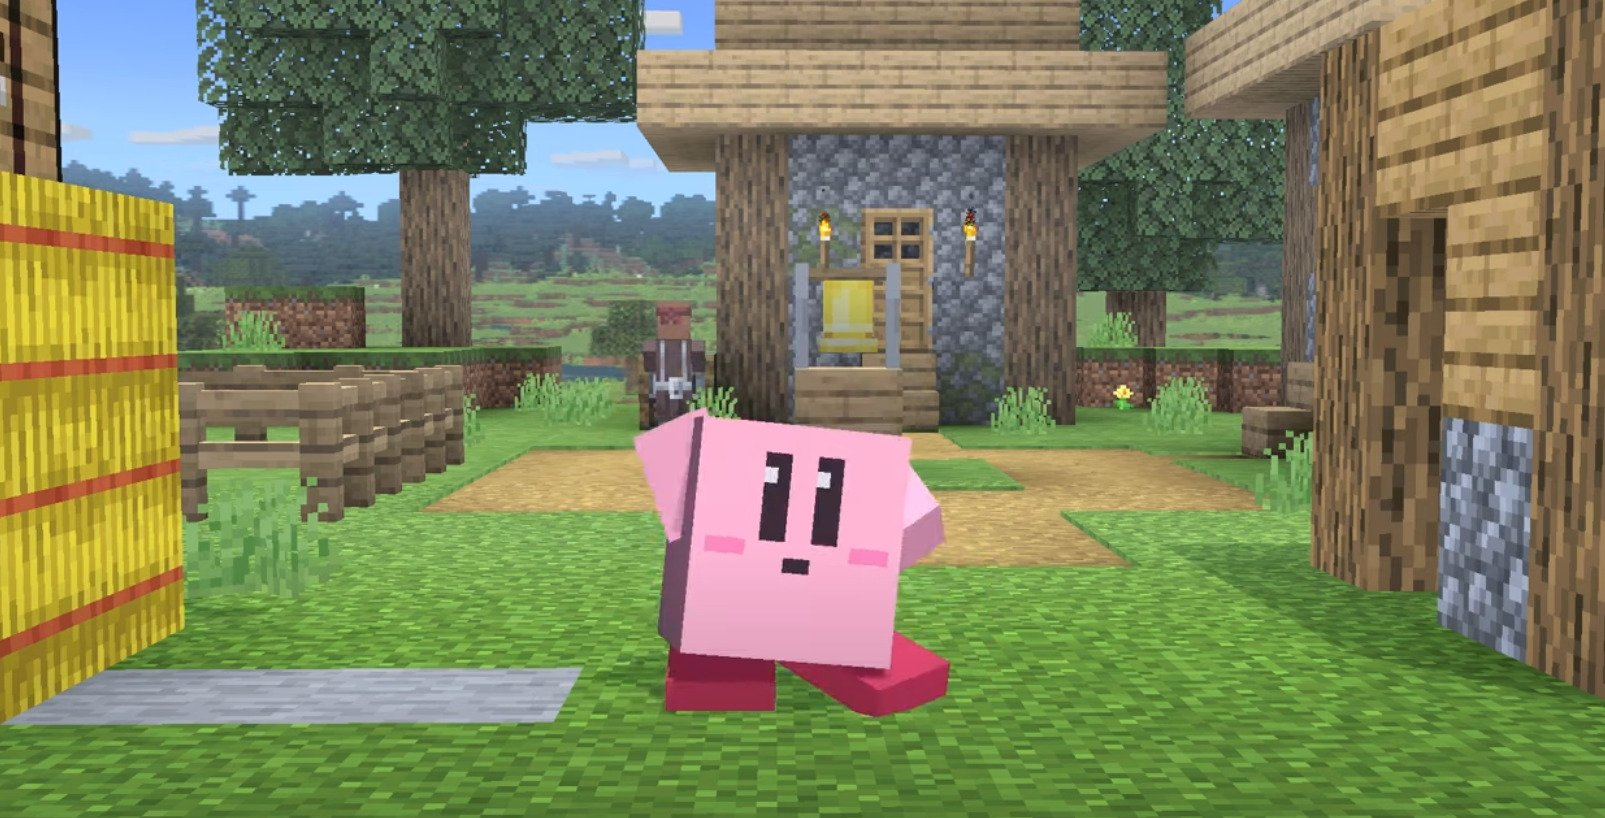 Kirby Will Turn Into A Block If He Inhales Steve Or Alex From Minecraft In Super Smash Bros. Ultimate DLC